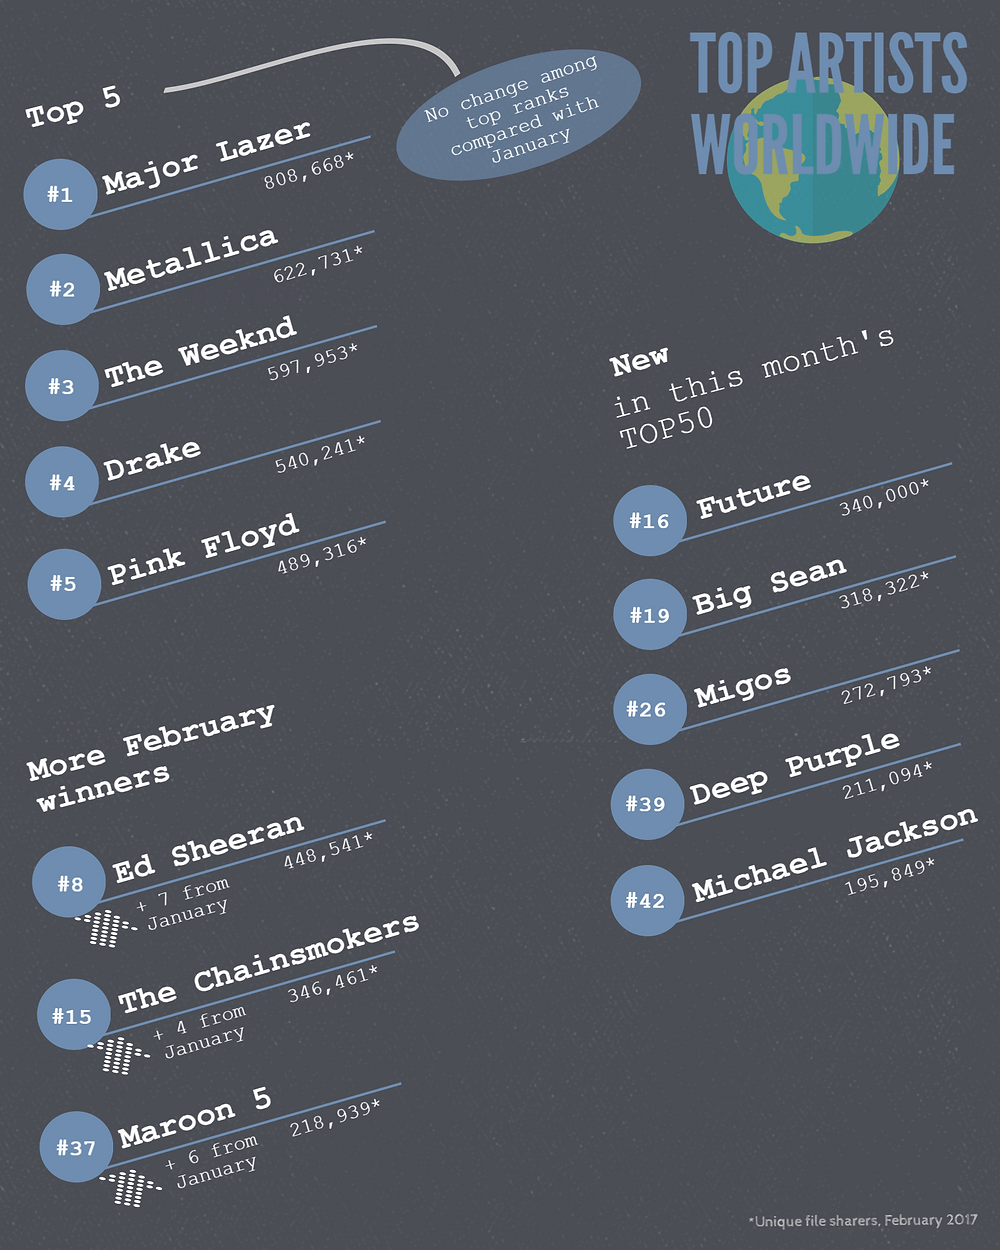 TECXIPIO infographic about the top artists worldwide, based on number of file sharers for their music files